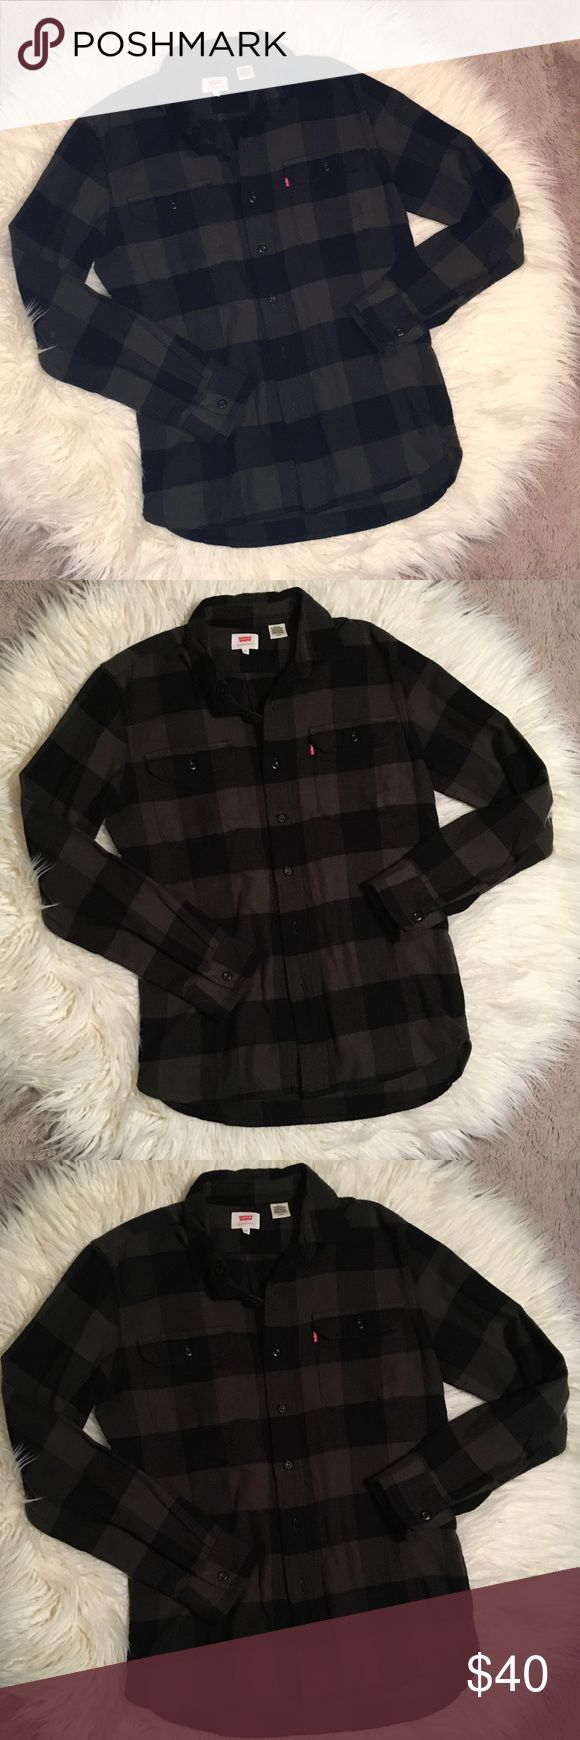 Levi's Green & Black Plaid Flannel Mens Size Small Worn only once! Pretty Hunter green and black plaid flannel. Super soft & Cozy! Purchased directly from Levis store. Technically a Men's Size Small but I wear a xs/s in Women's and loved this as a looser fitting flannel. Levi's Shirts Casual Button Down Shirts